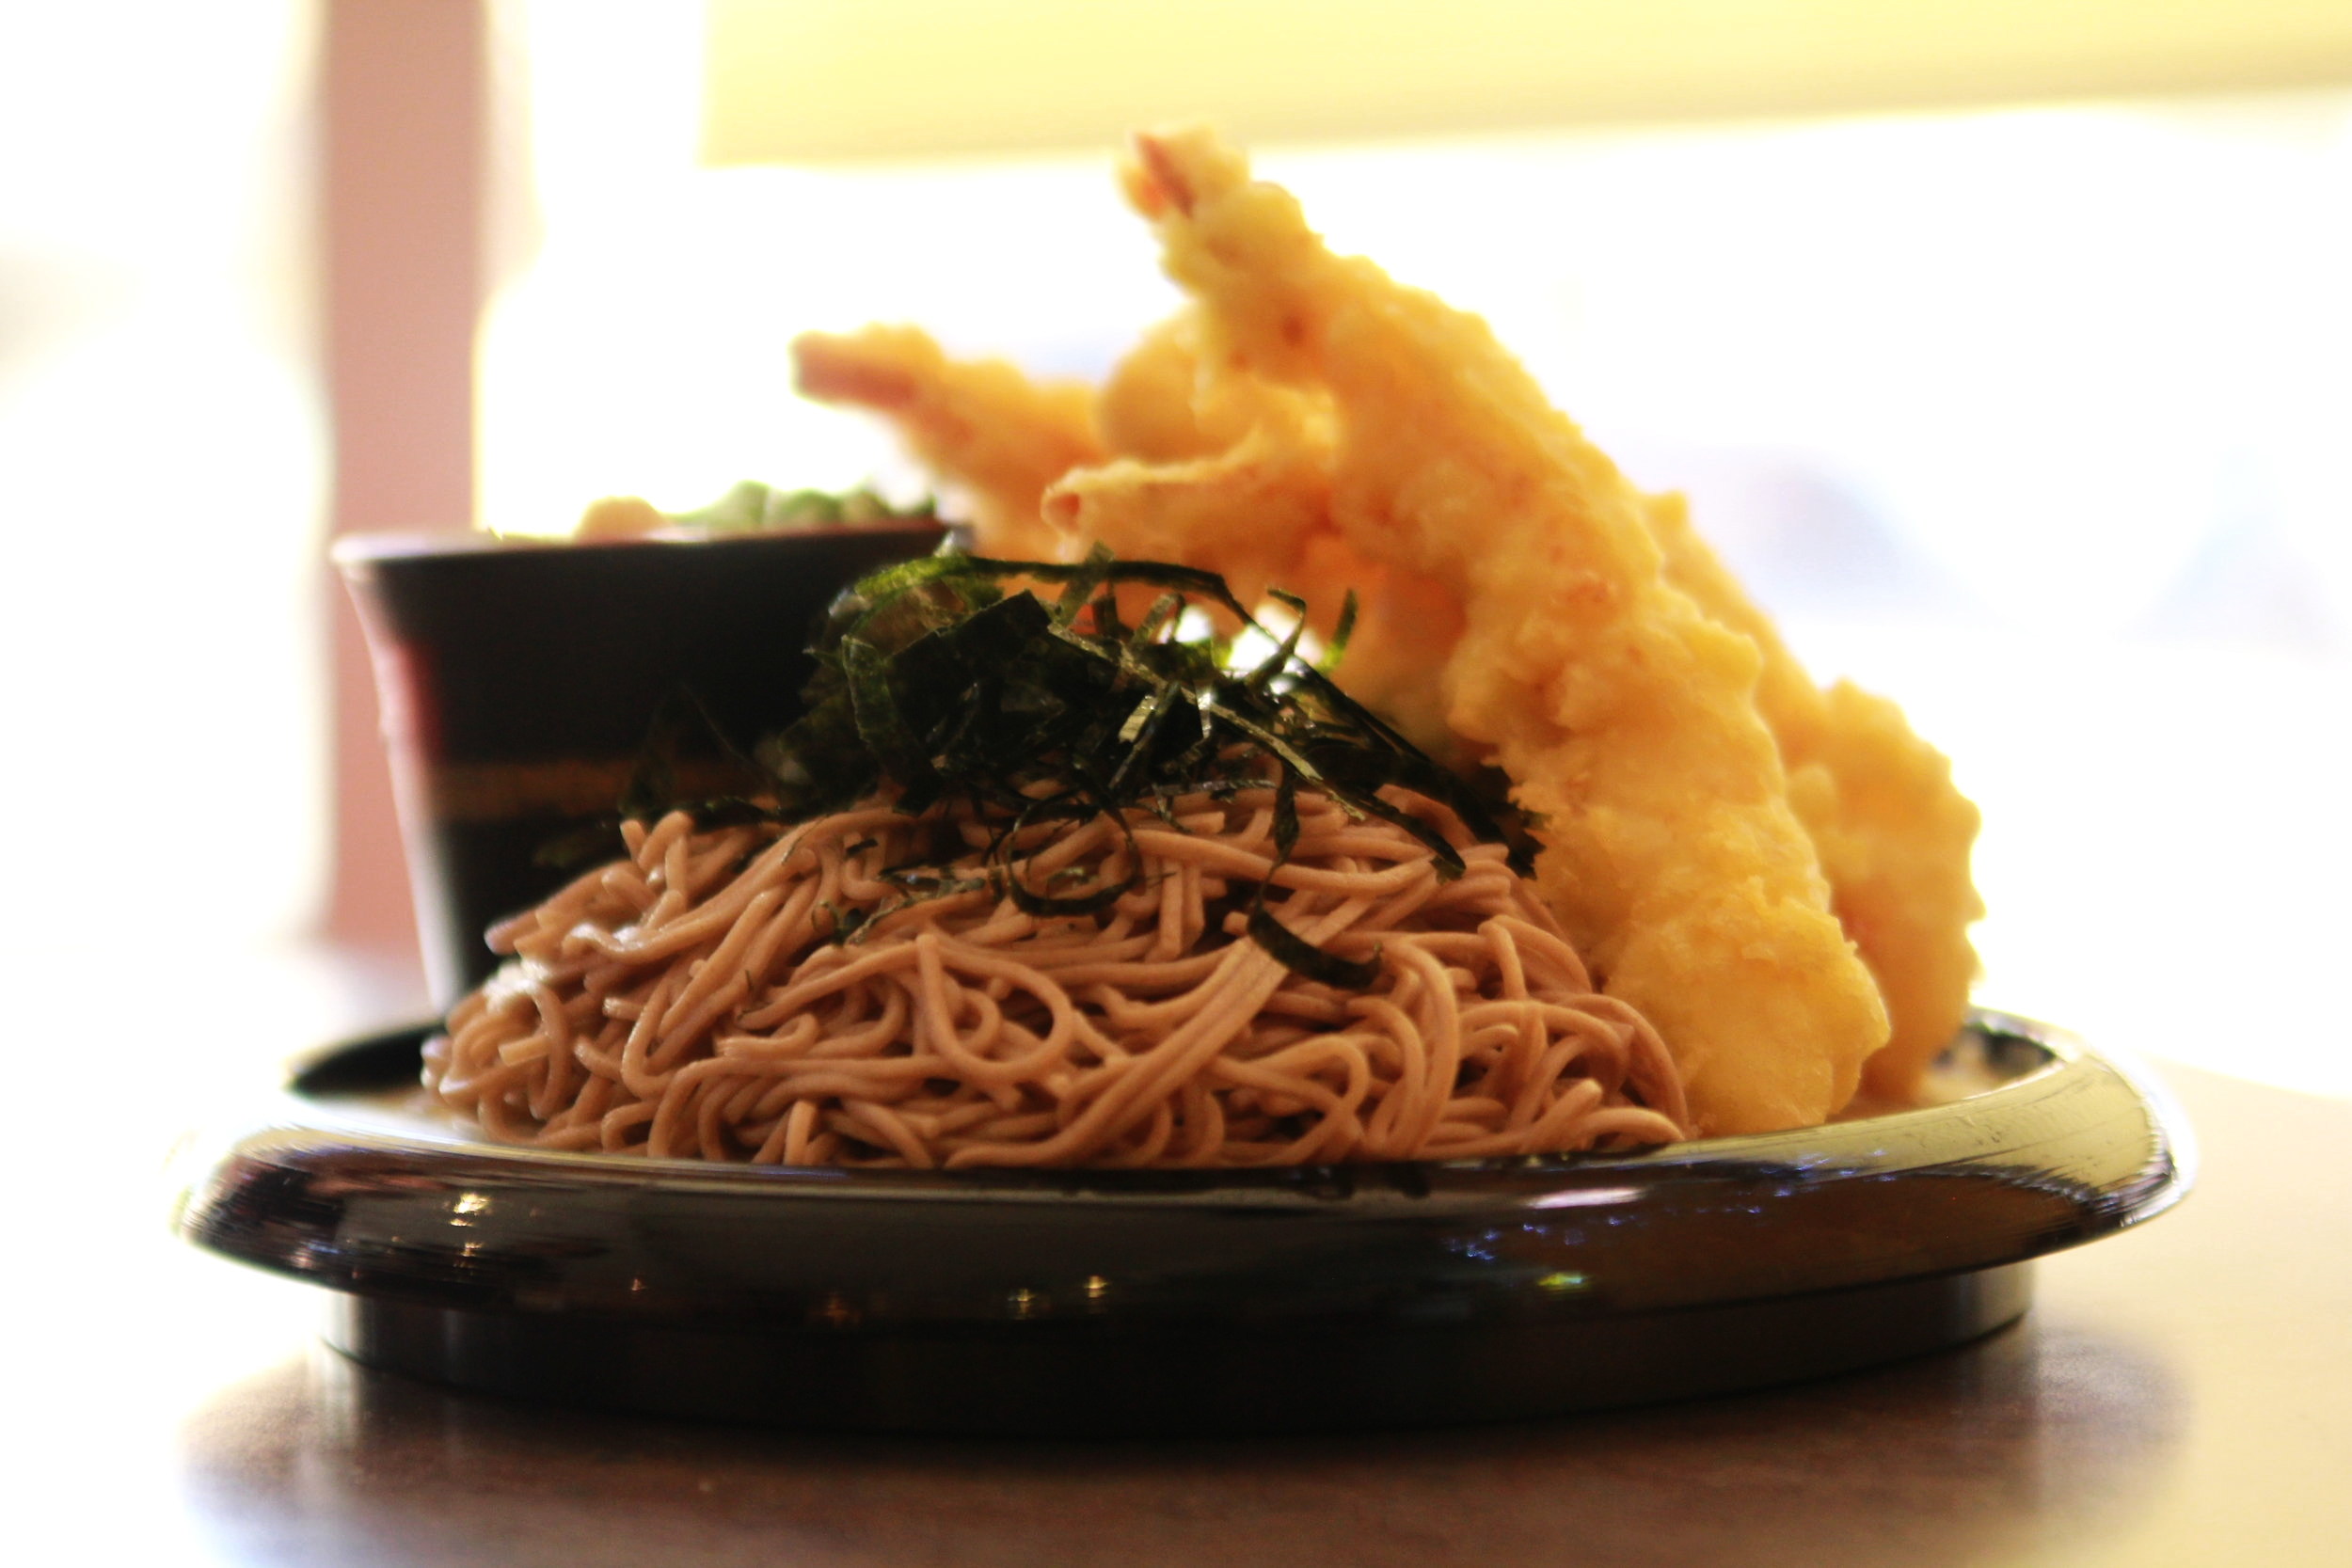 Hello! Spring is finally here and we have a classic Japanese dish on special! Zaru Soba with Tempura shrimp and vegetables. Swing in and have a bite!